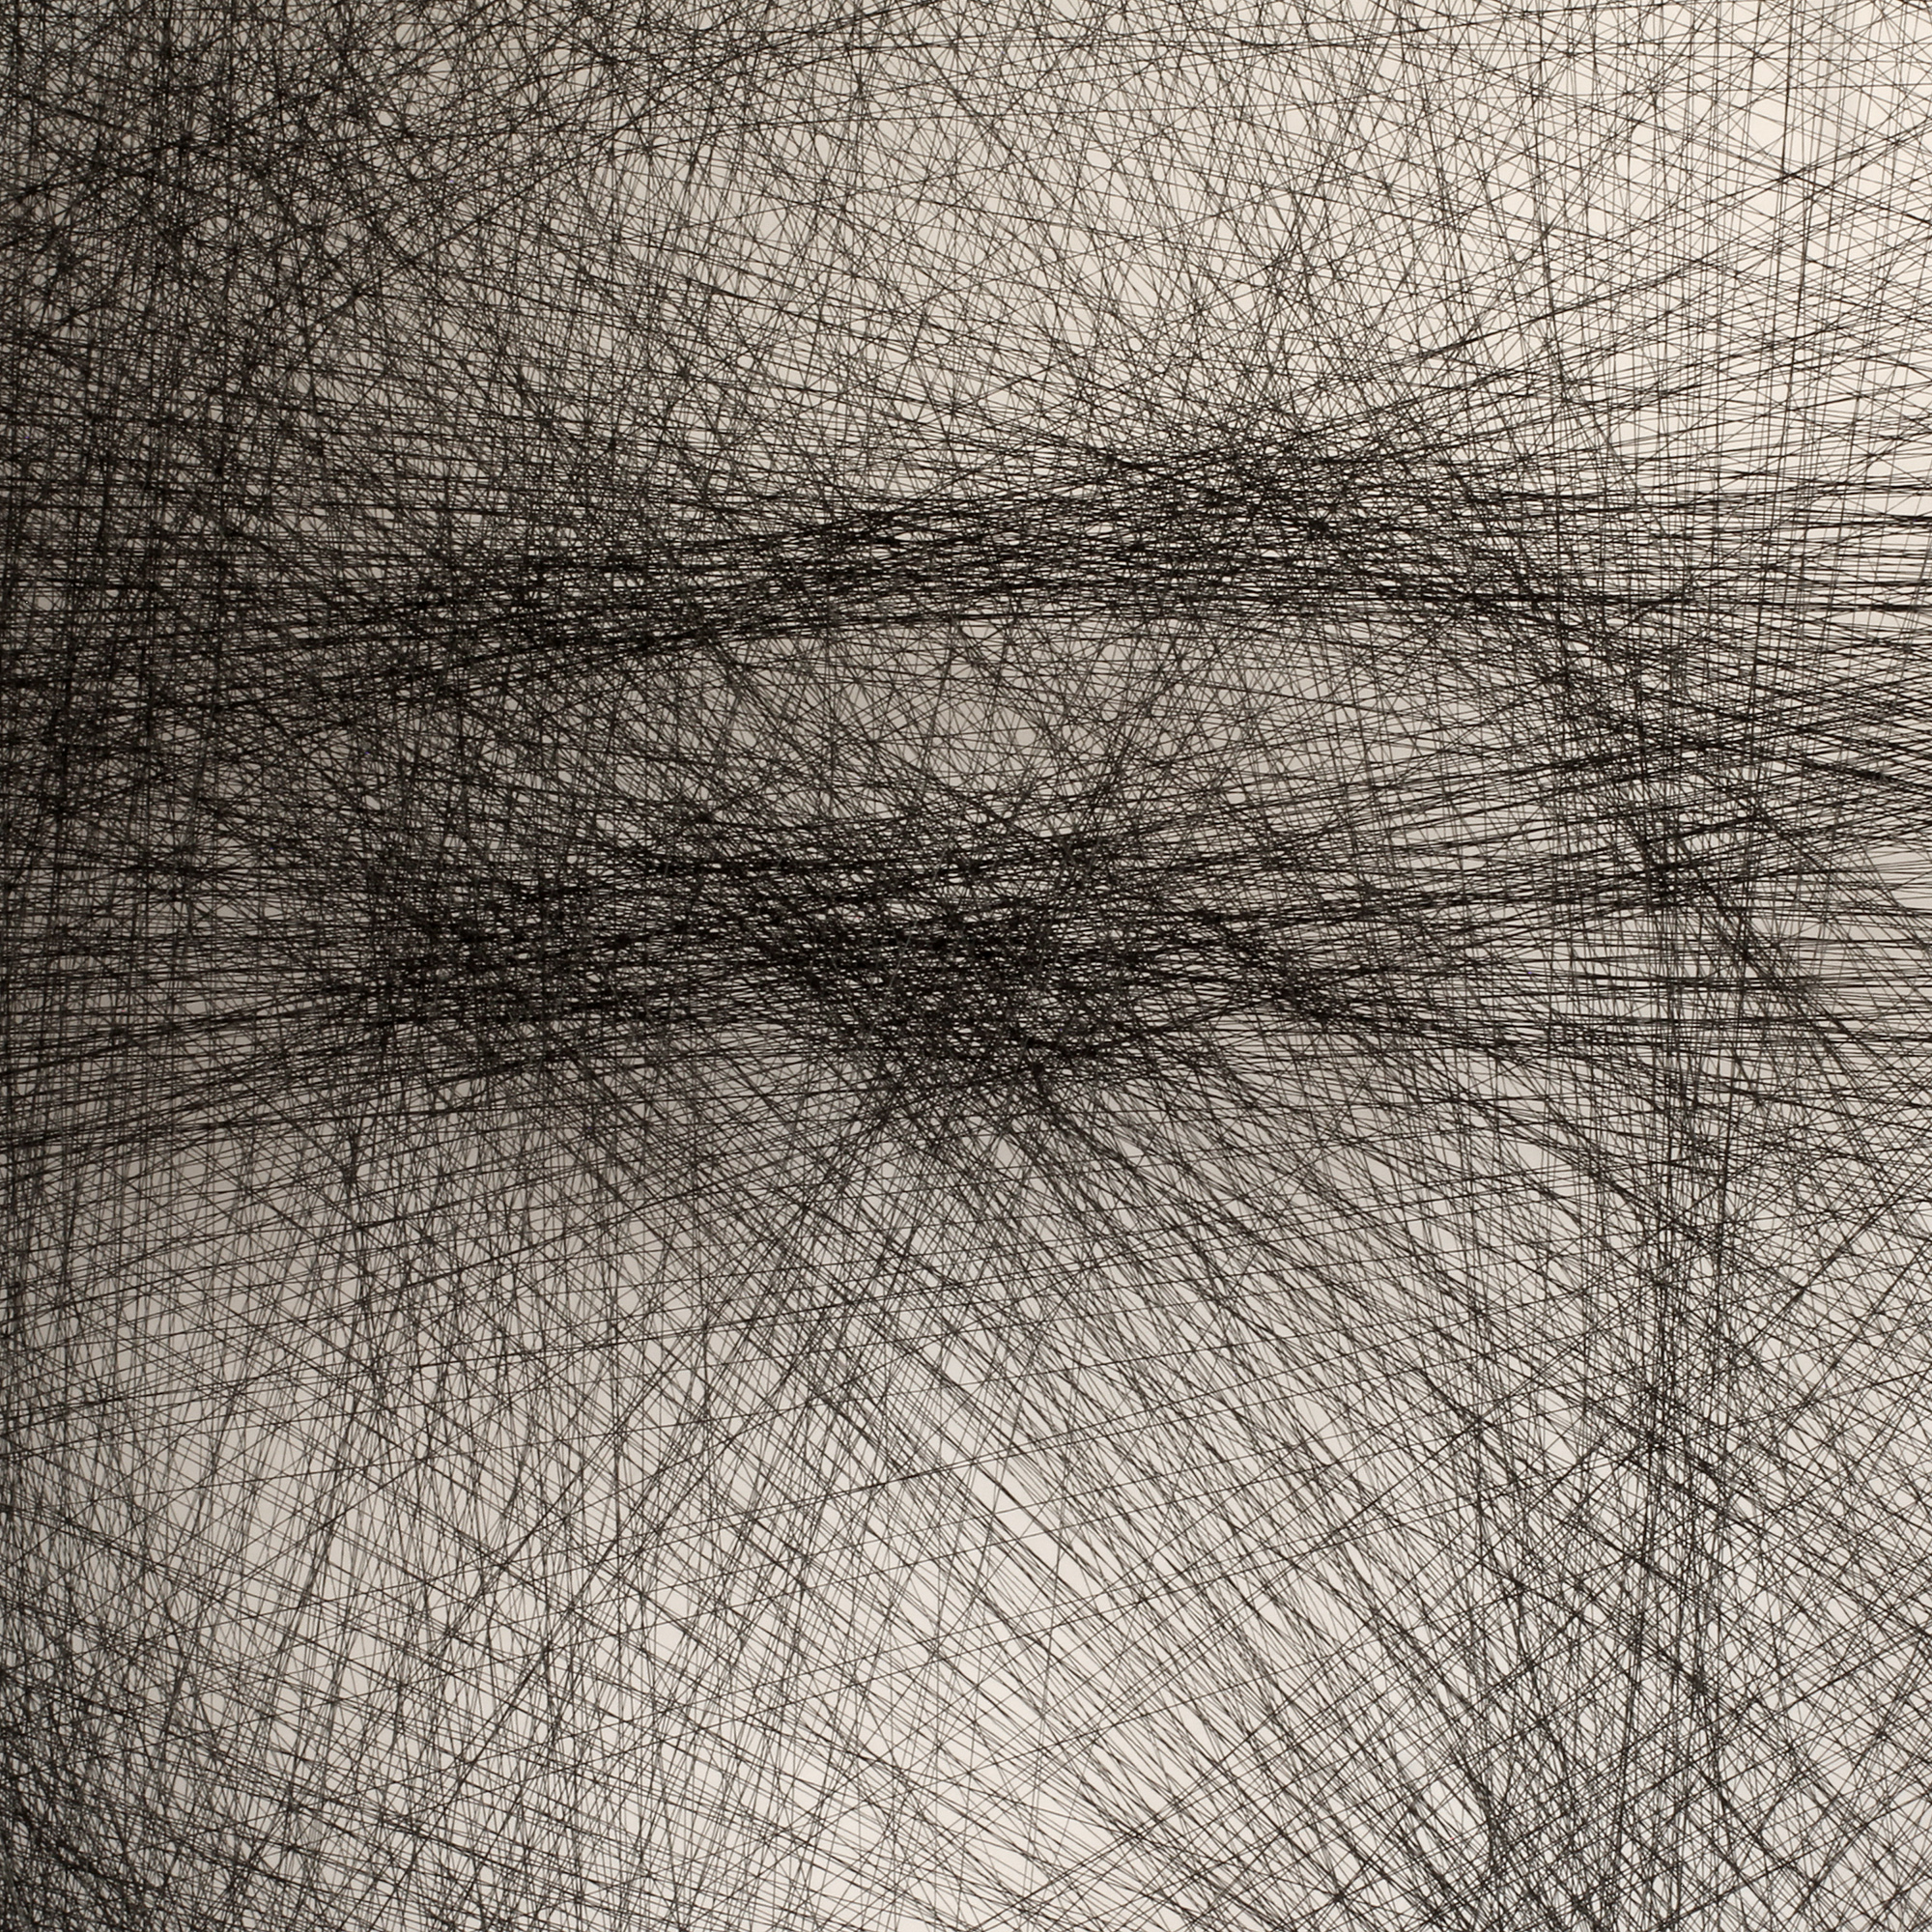 close-up-thread-portrait.jpg